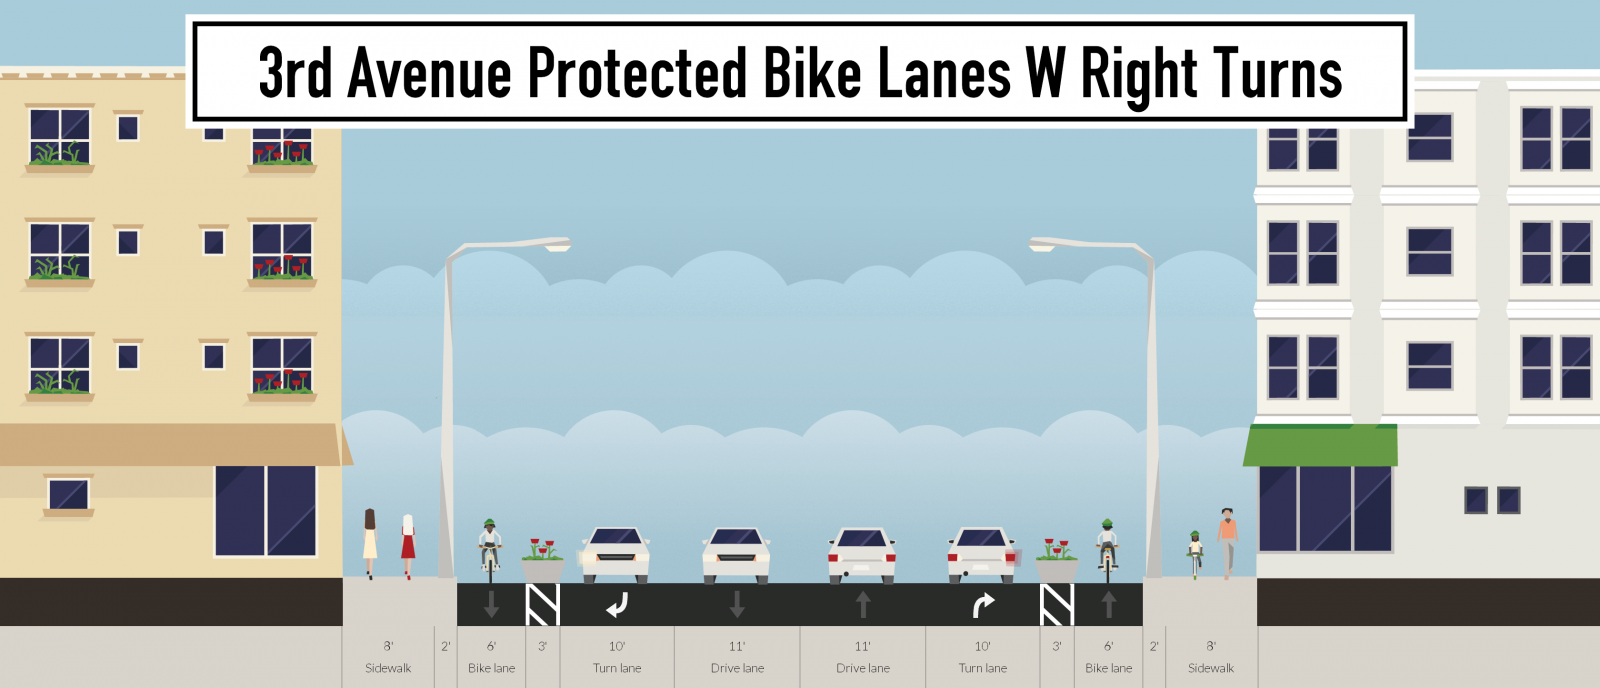 3rd-avenue-protected-bike-lanes-w-right-turns.png